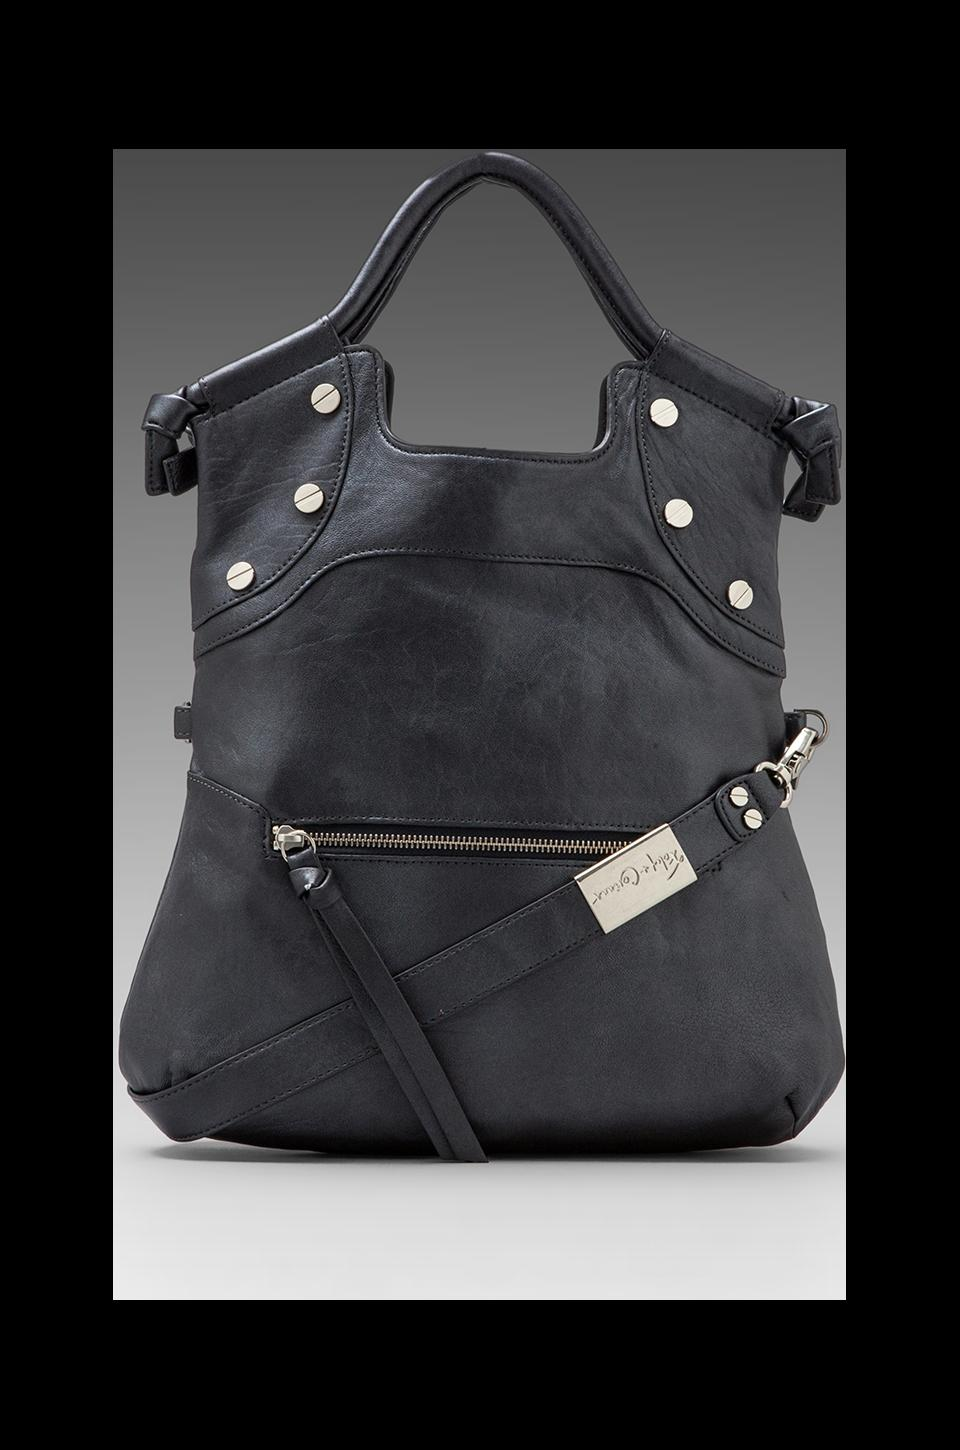 Foley + Corinna FC Lady Bag in Ink